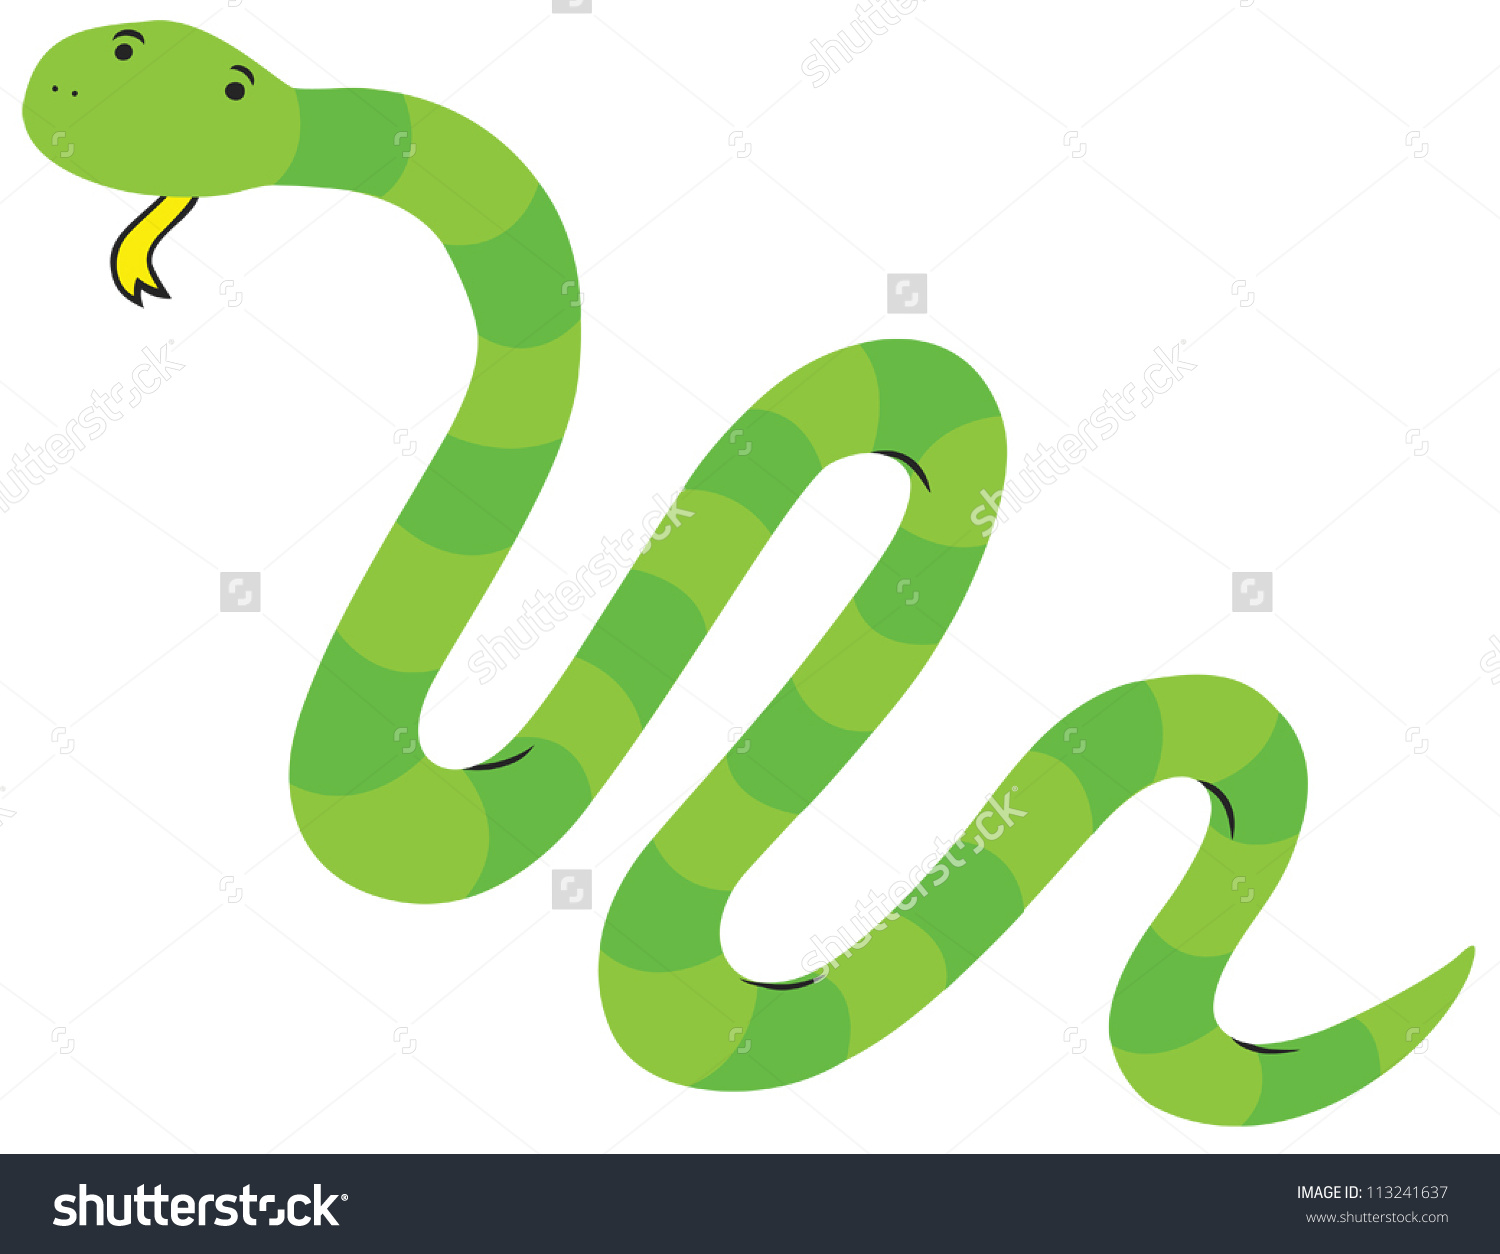 Grass Snake clipart #16, Download drawings